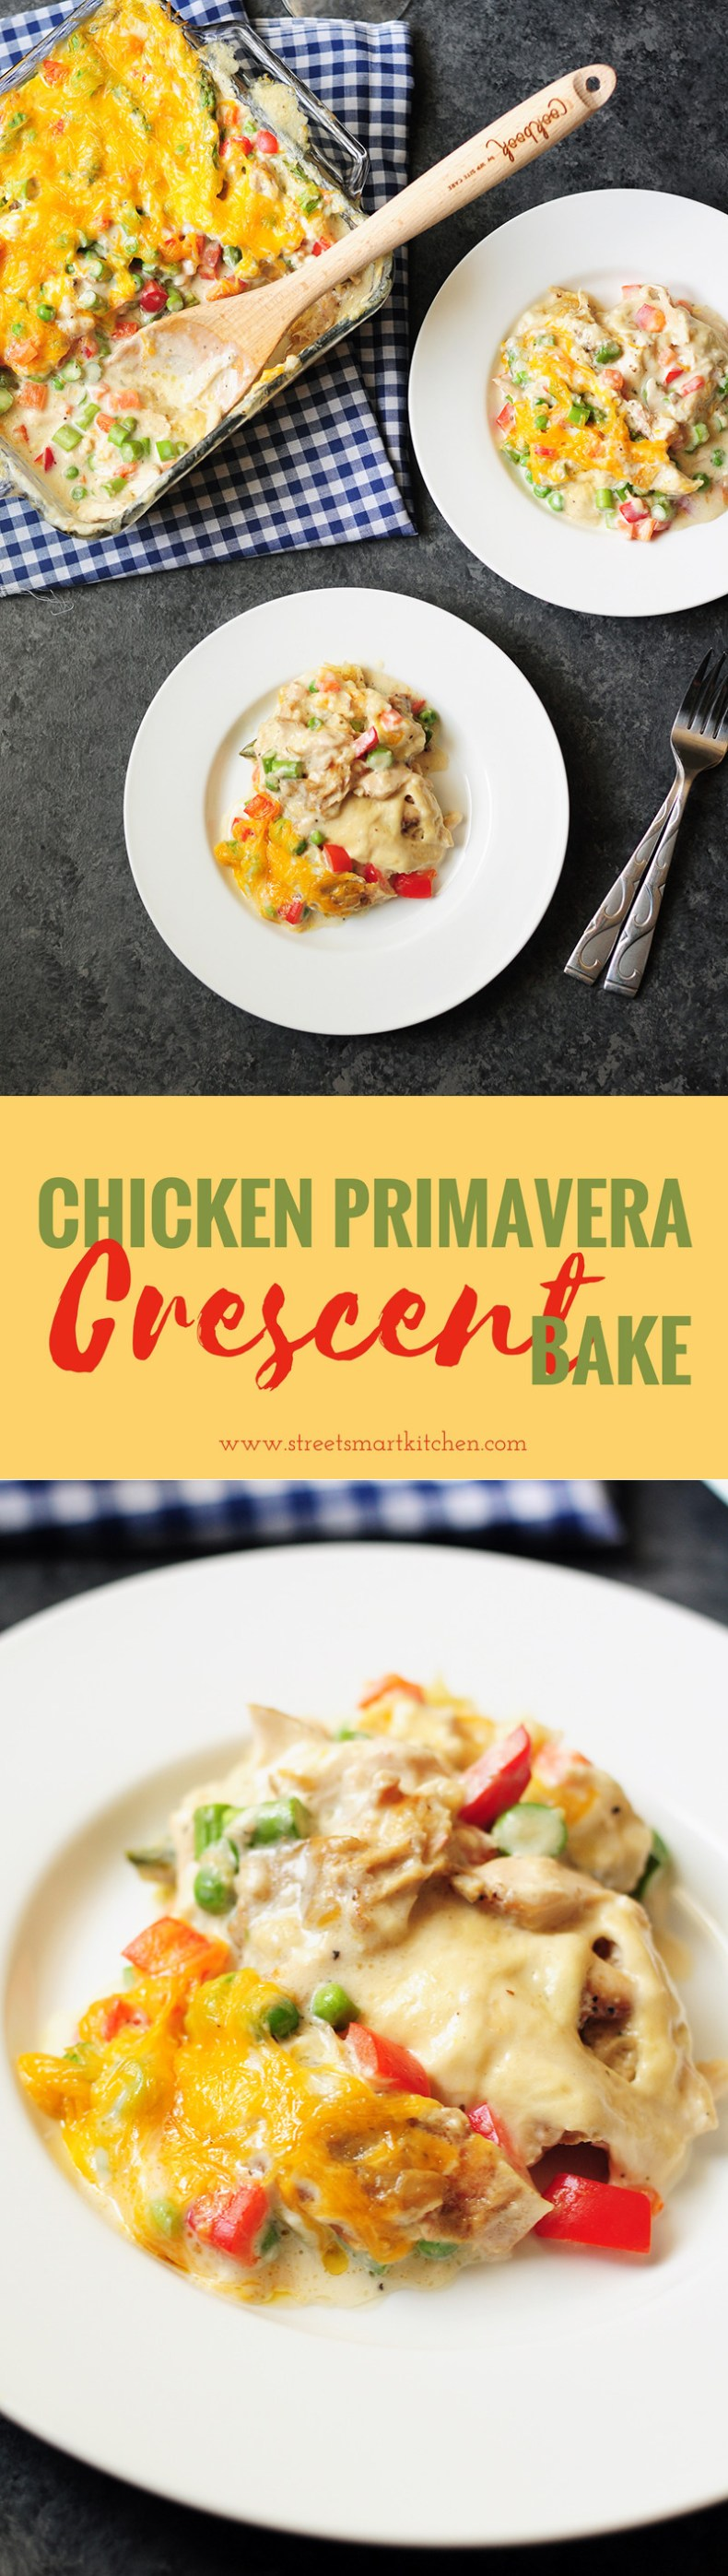 Chicken Primavera rolled up in crescent rolls and covered with a delicious layer of creamy vegetables, this crescent bake is not your average casserole!